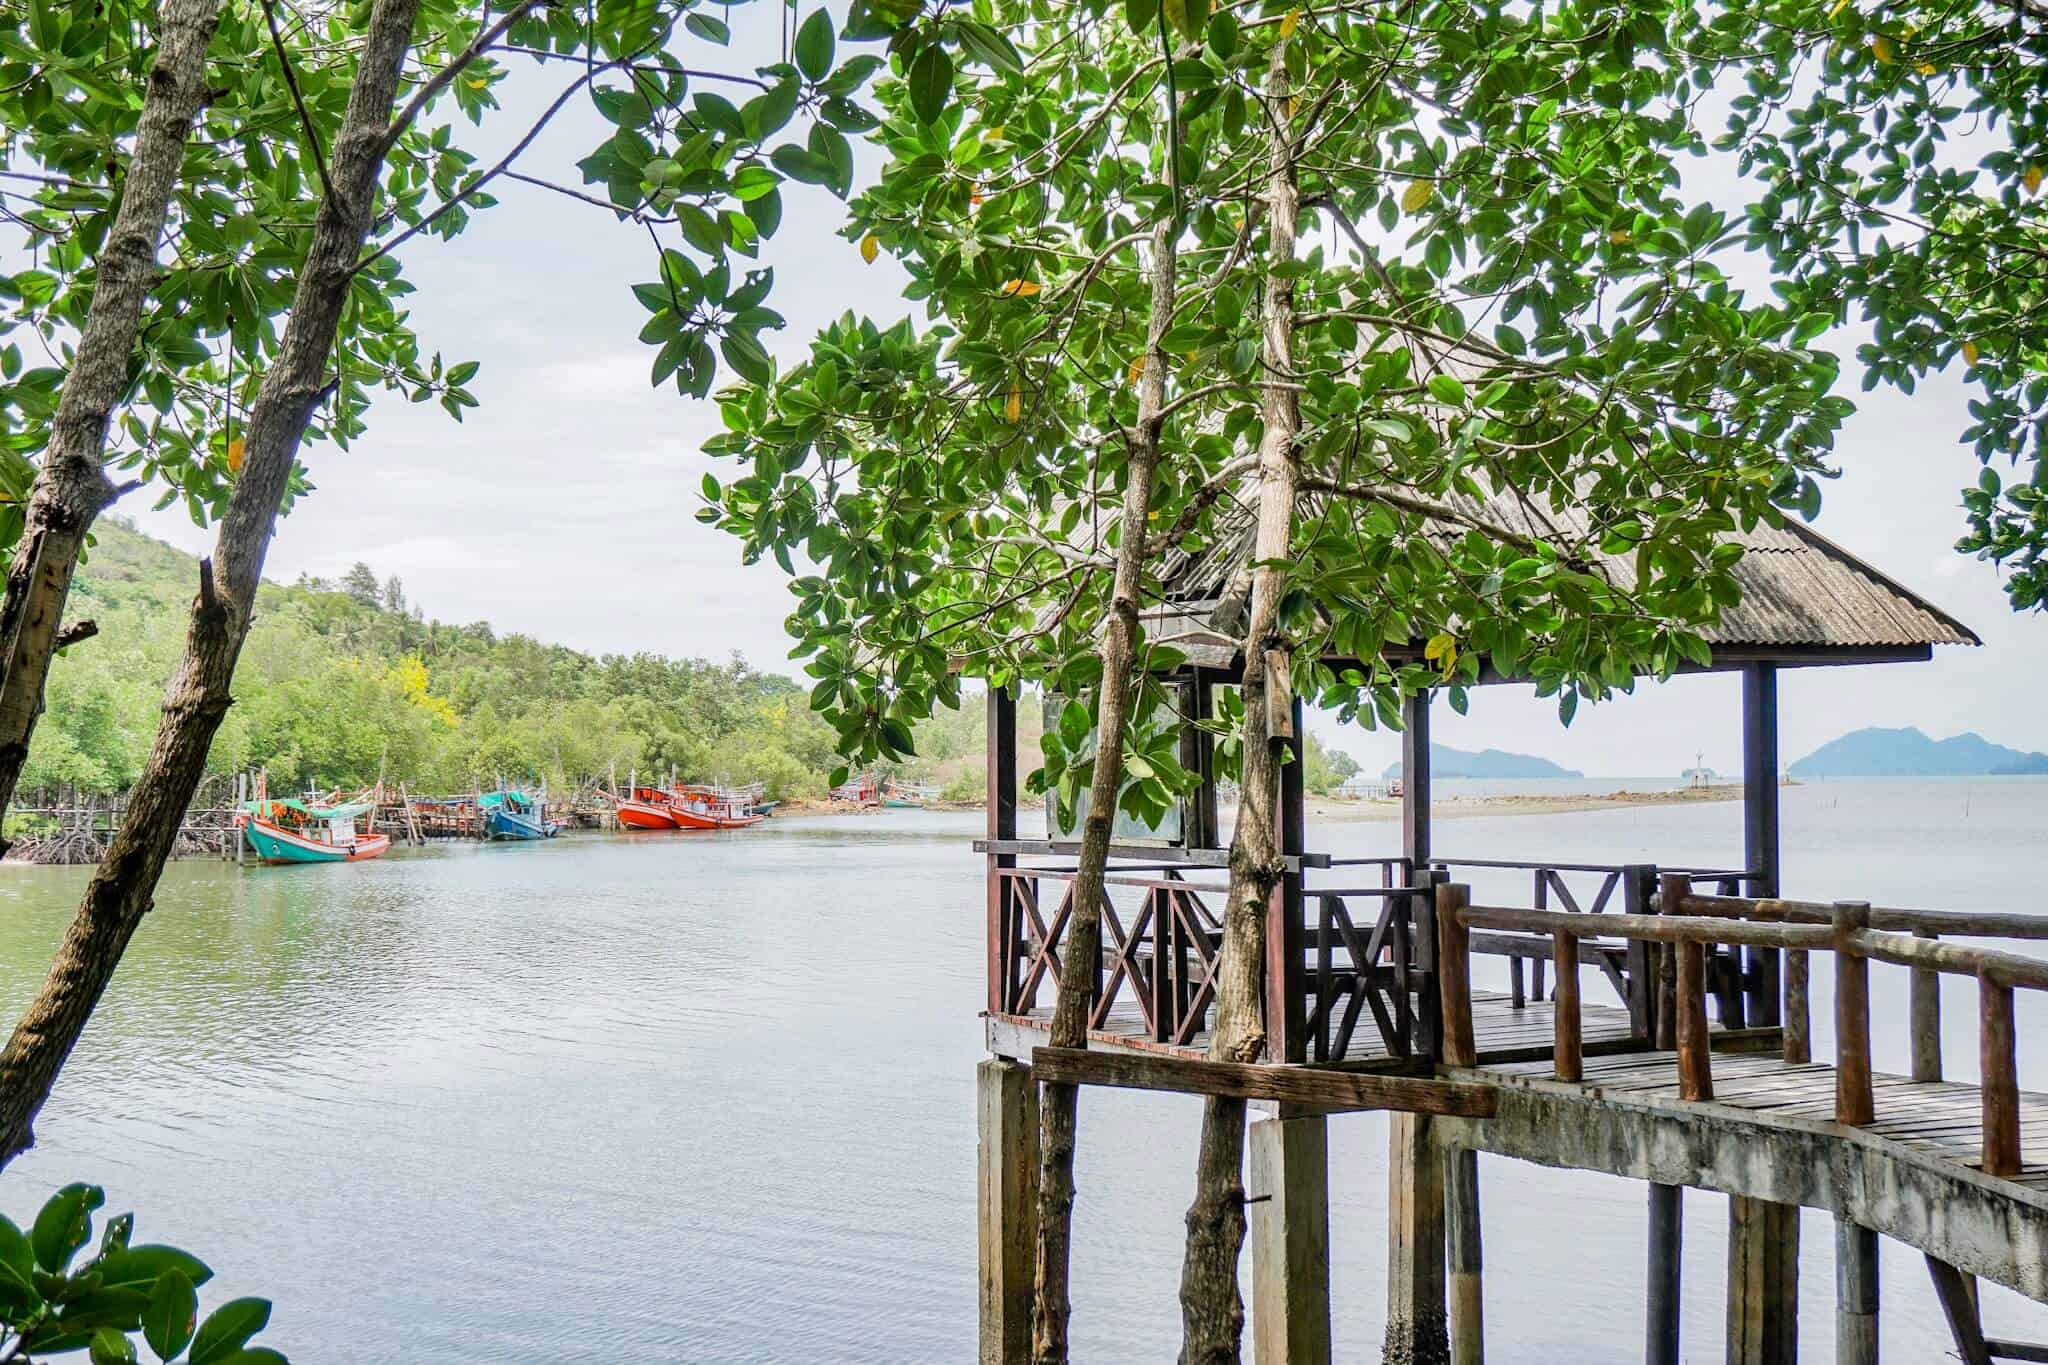 Mu Koh Chumphon National Park – The Mangroves